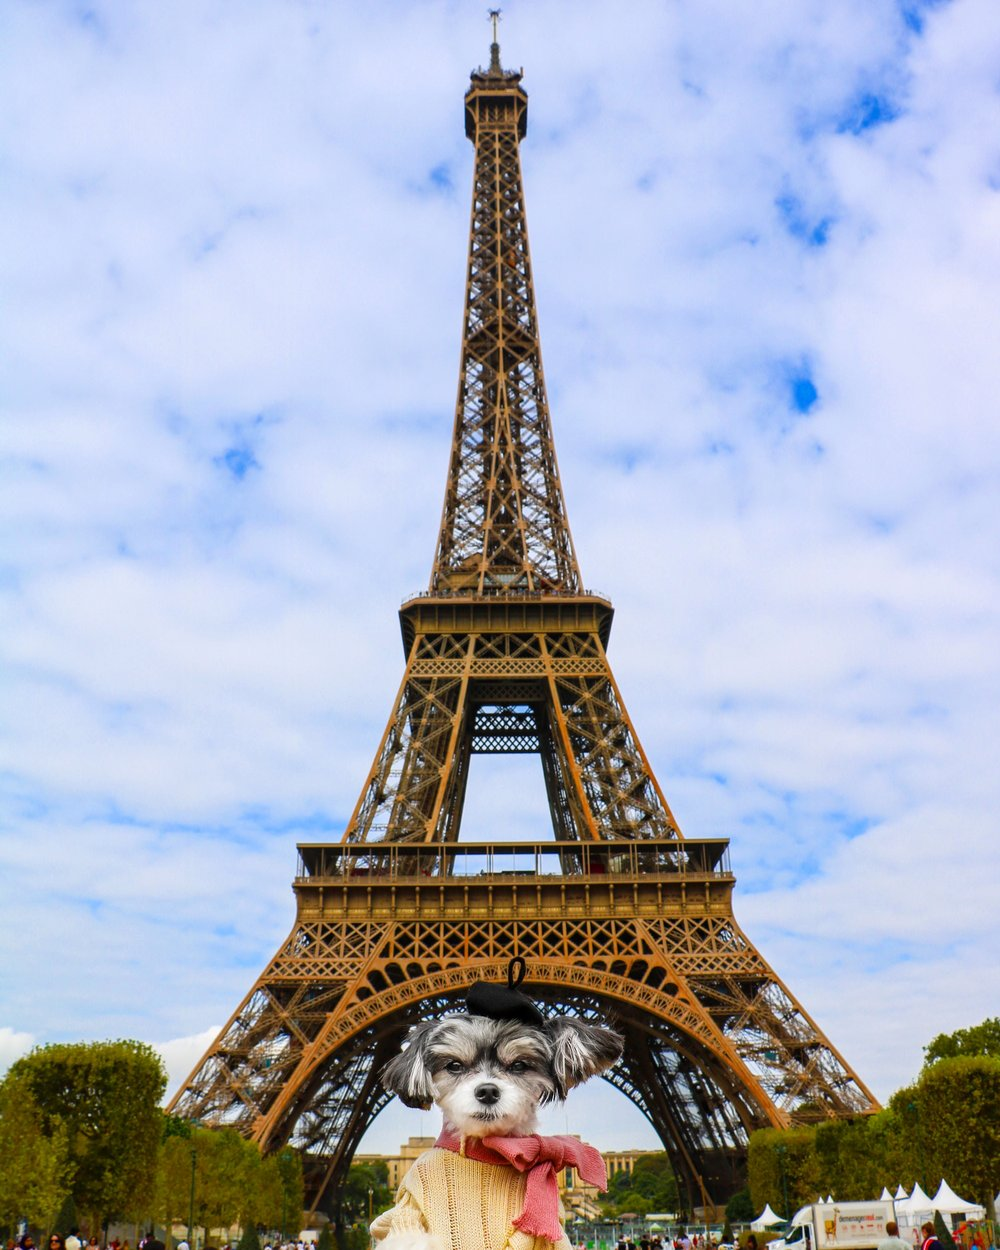 Tinkerbelle and the Eiffel Tower